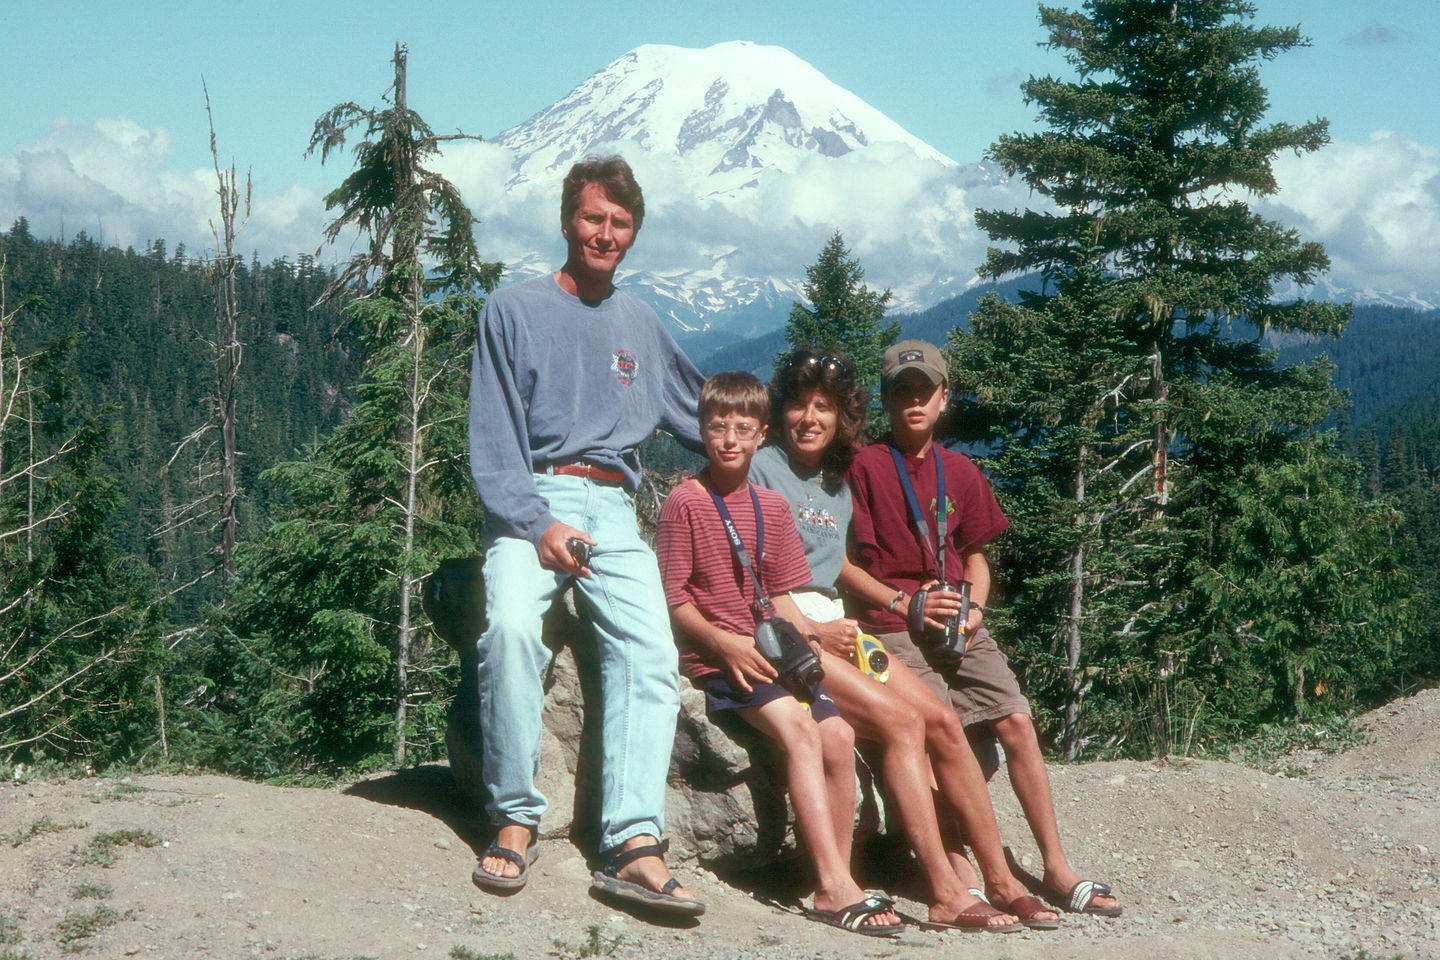 Family in front of the elusive Mt. Rainier